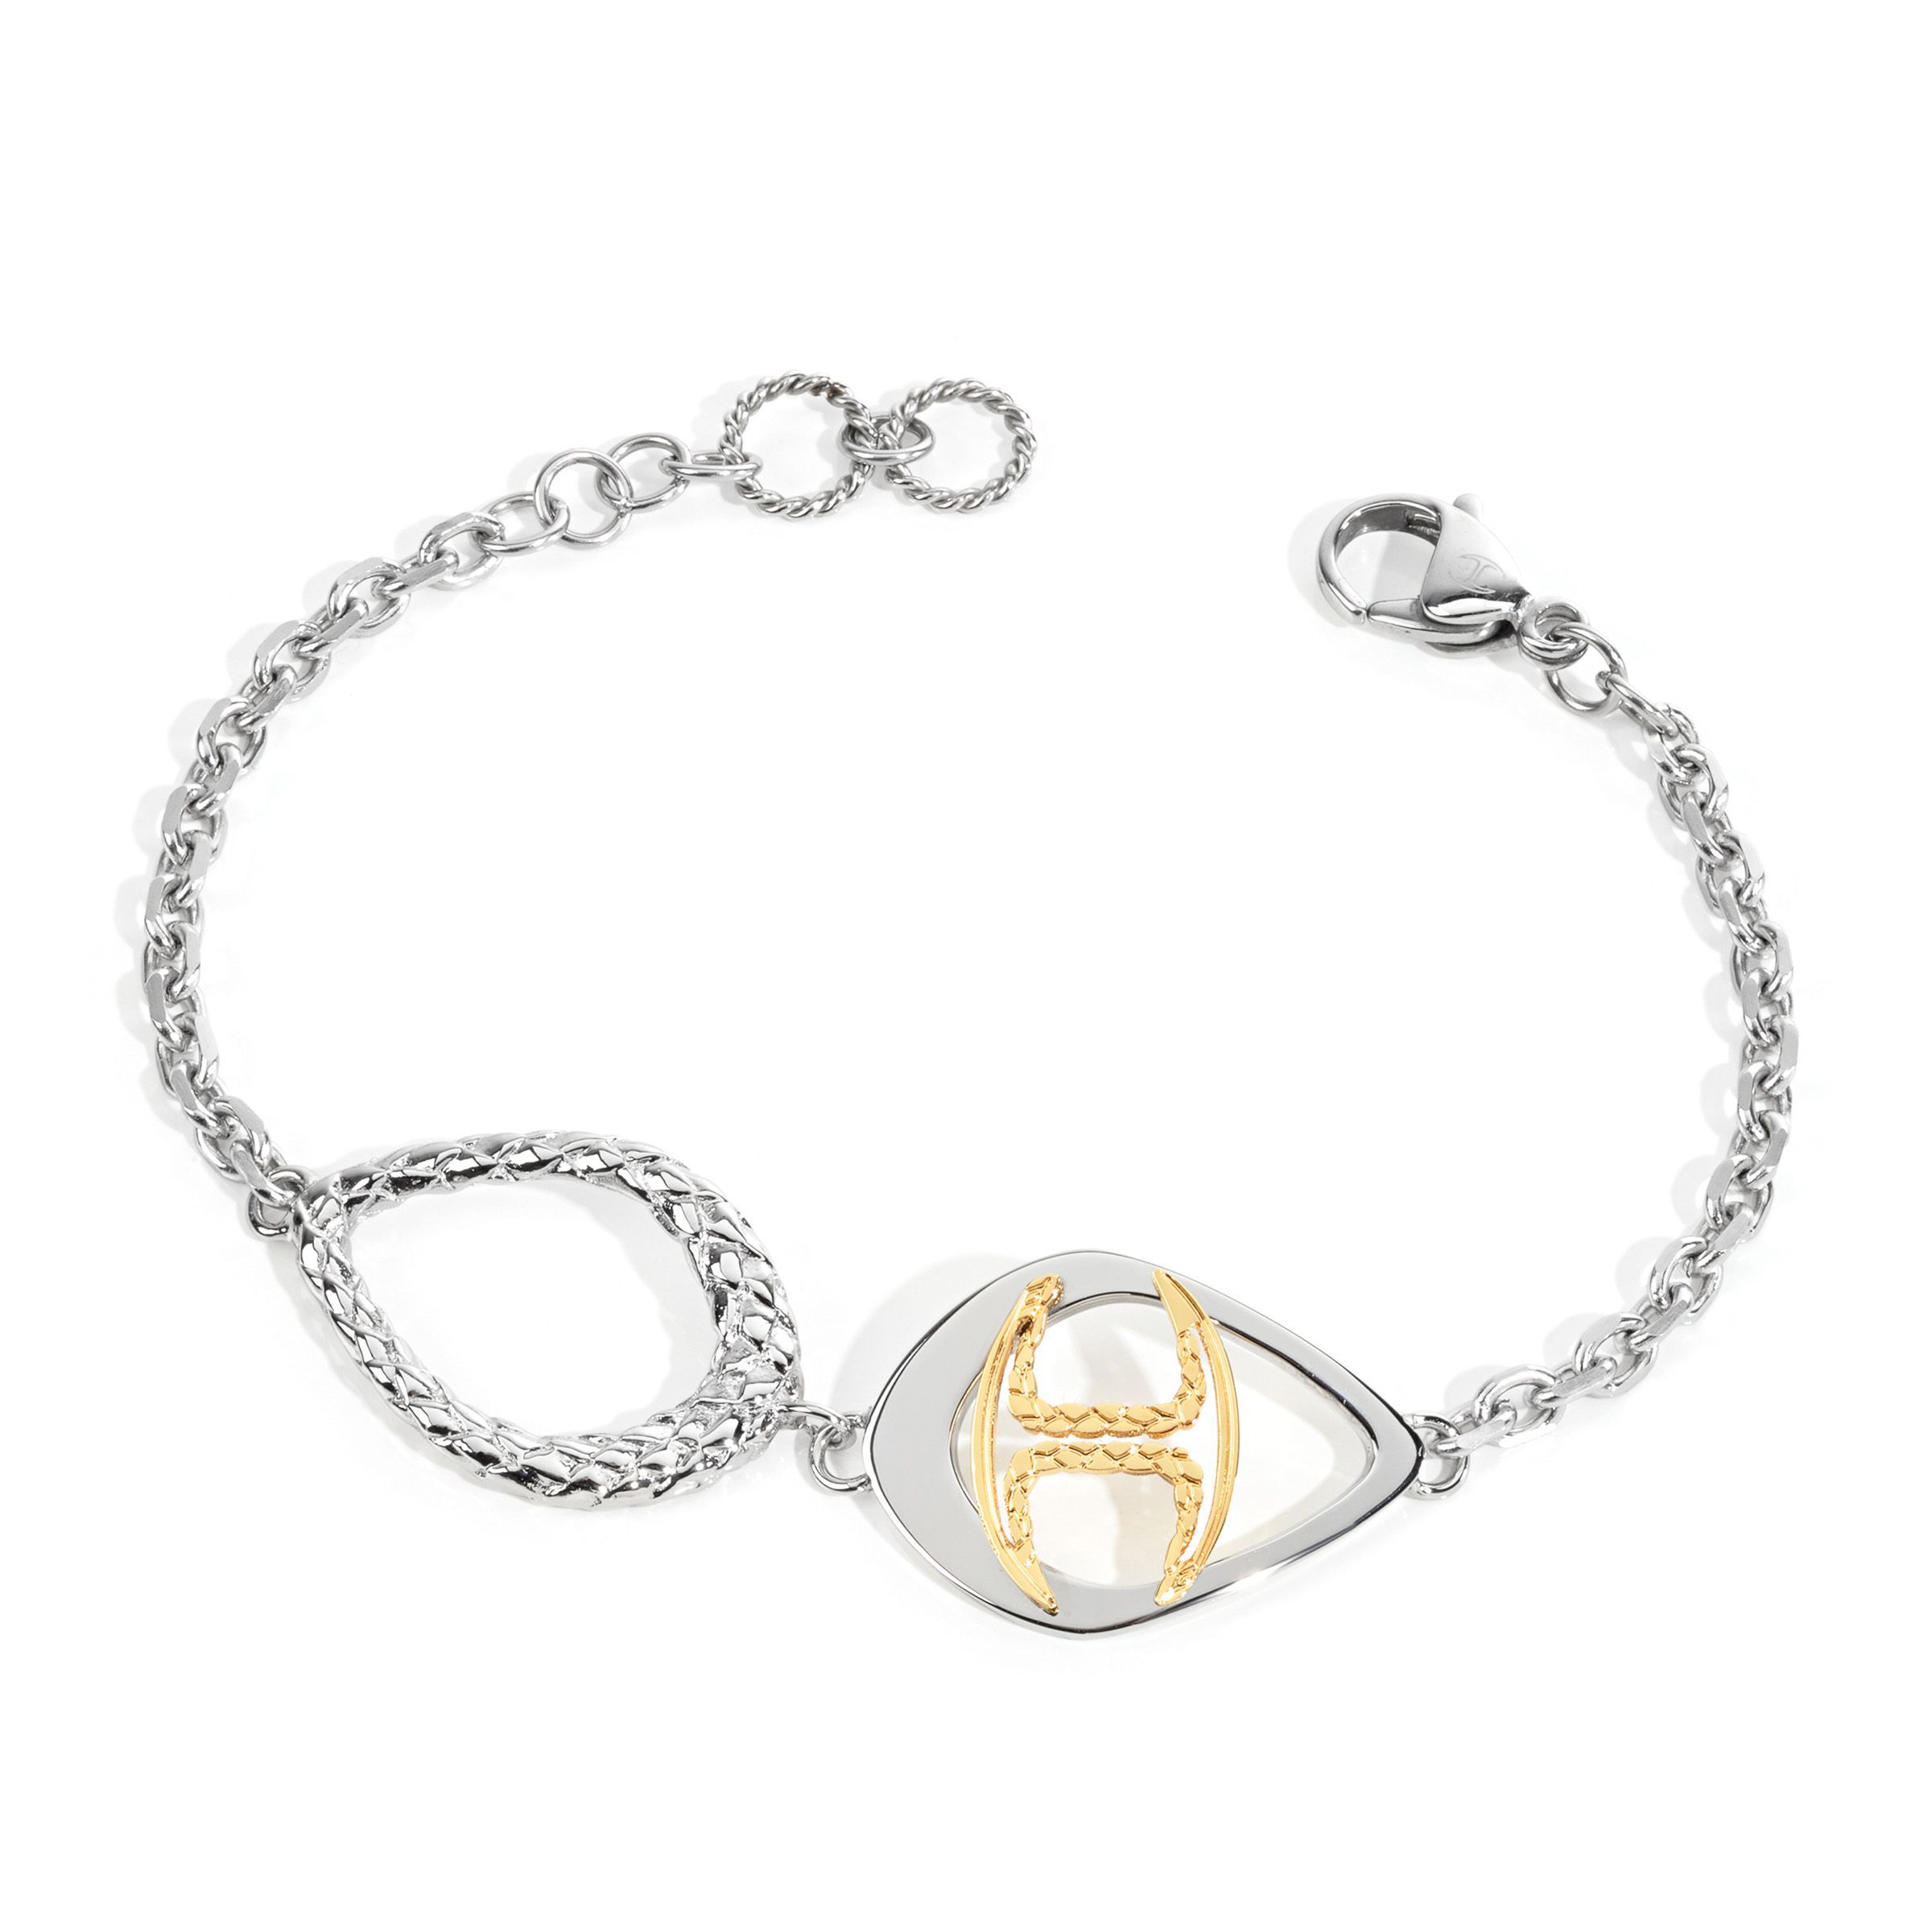 bracelet it monogram products jewelry keep louis twice enlarged bracelets vuitton charm